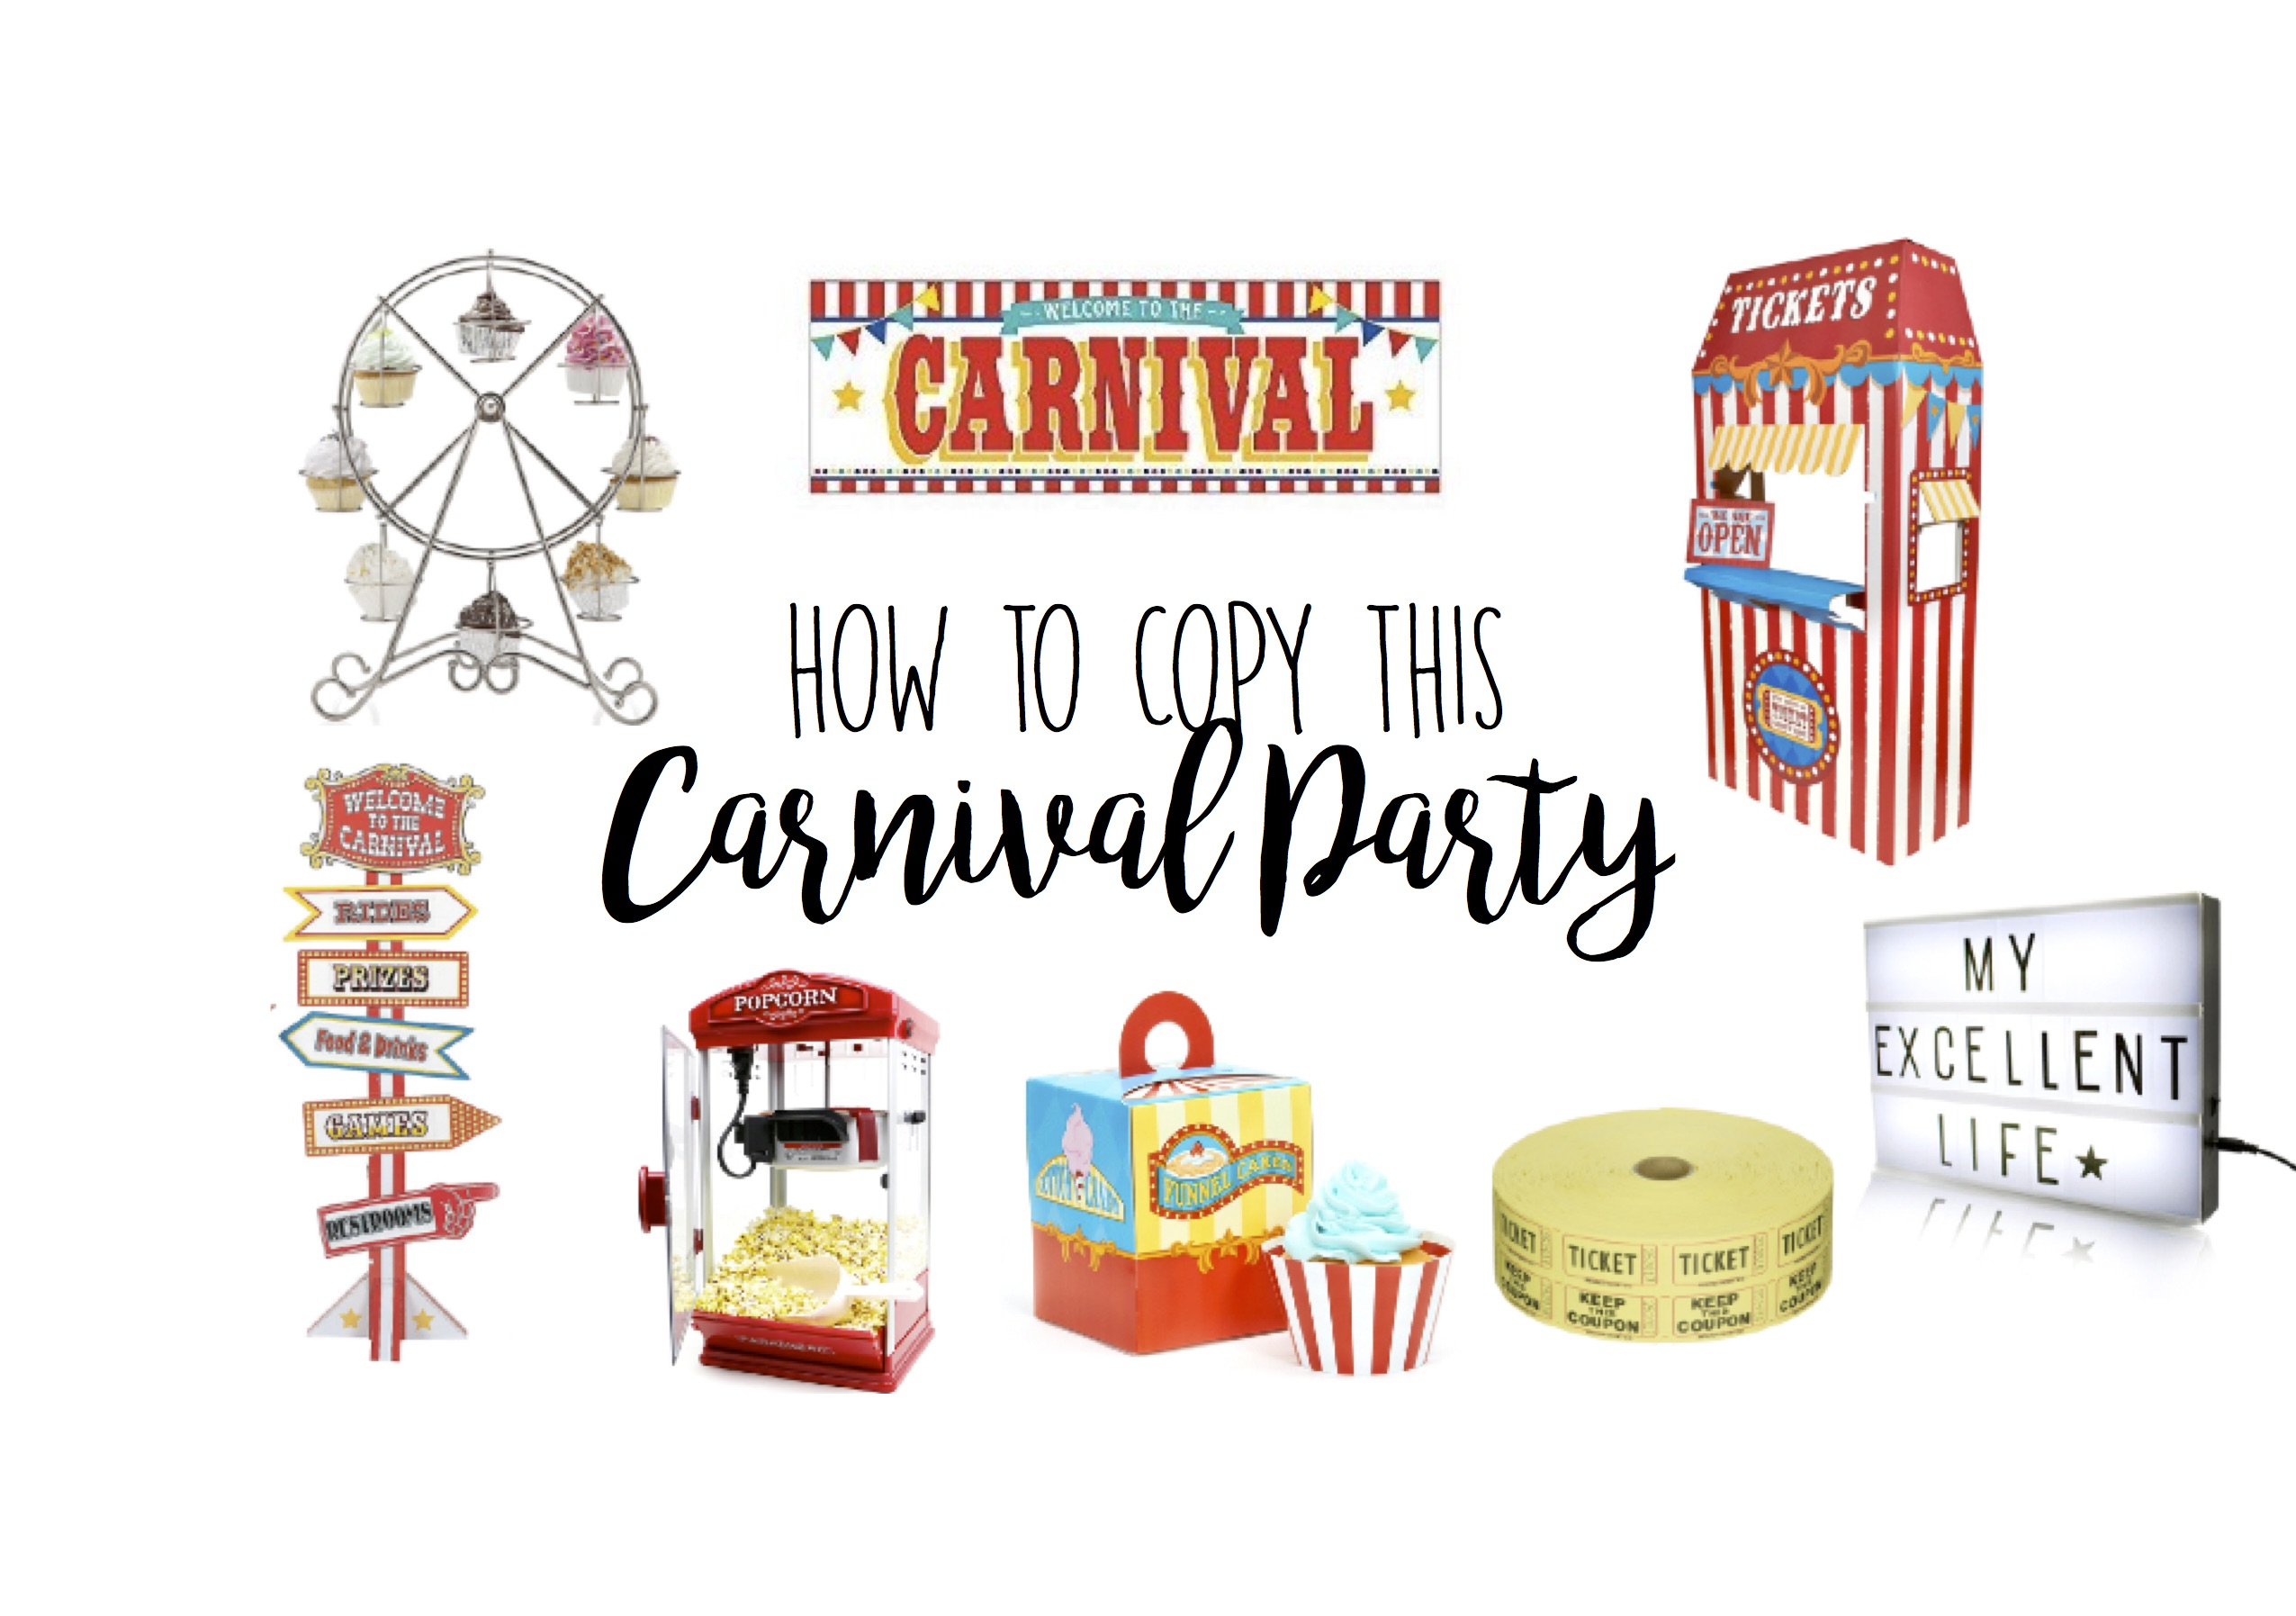 Circus Carnival Birthday Party Theme Ideas - Big Top Party Ideas